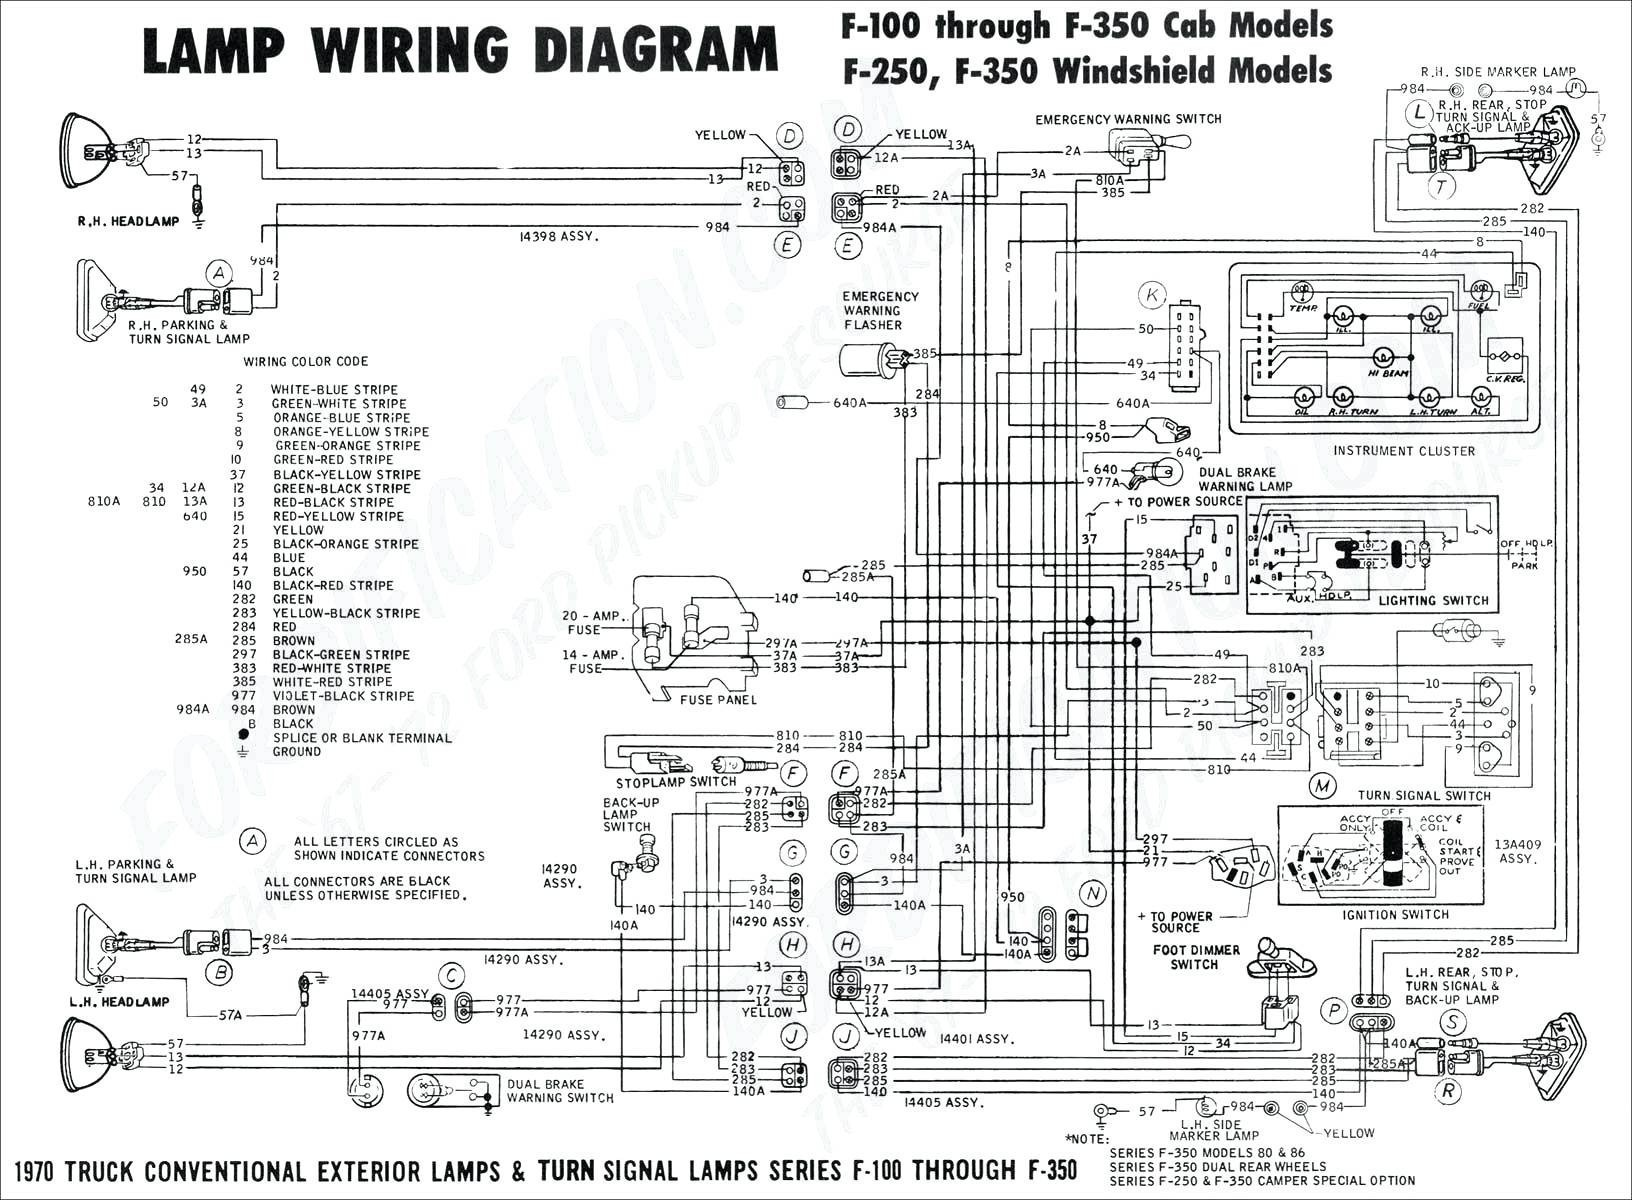 Ford Trailer Wiring Color Code | Wiring Diagrams on transistor color code, fuses color code, hardware color code, trailer hitch color code, ac power color code, telco color code, lighting color code, seymour duncan color code, dimarzio color code, pioneer radio color code, trailer harness color code, 277v color code, extension spring color code, osha inspection color code, 7-way trailer plug wiring code, extension cord inspection color code, electrical color code, phone jack color code, compass color code, nec conductor color code,